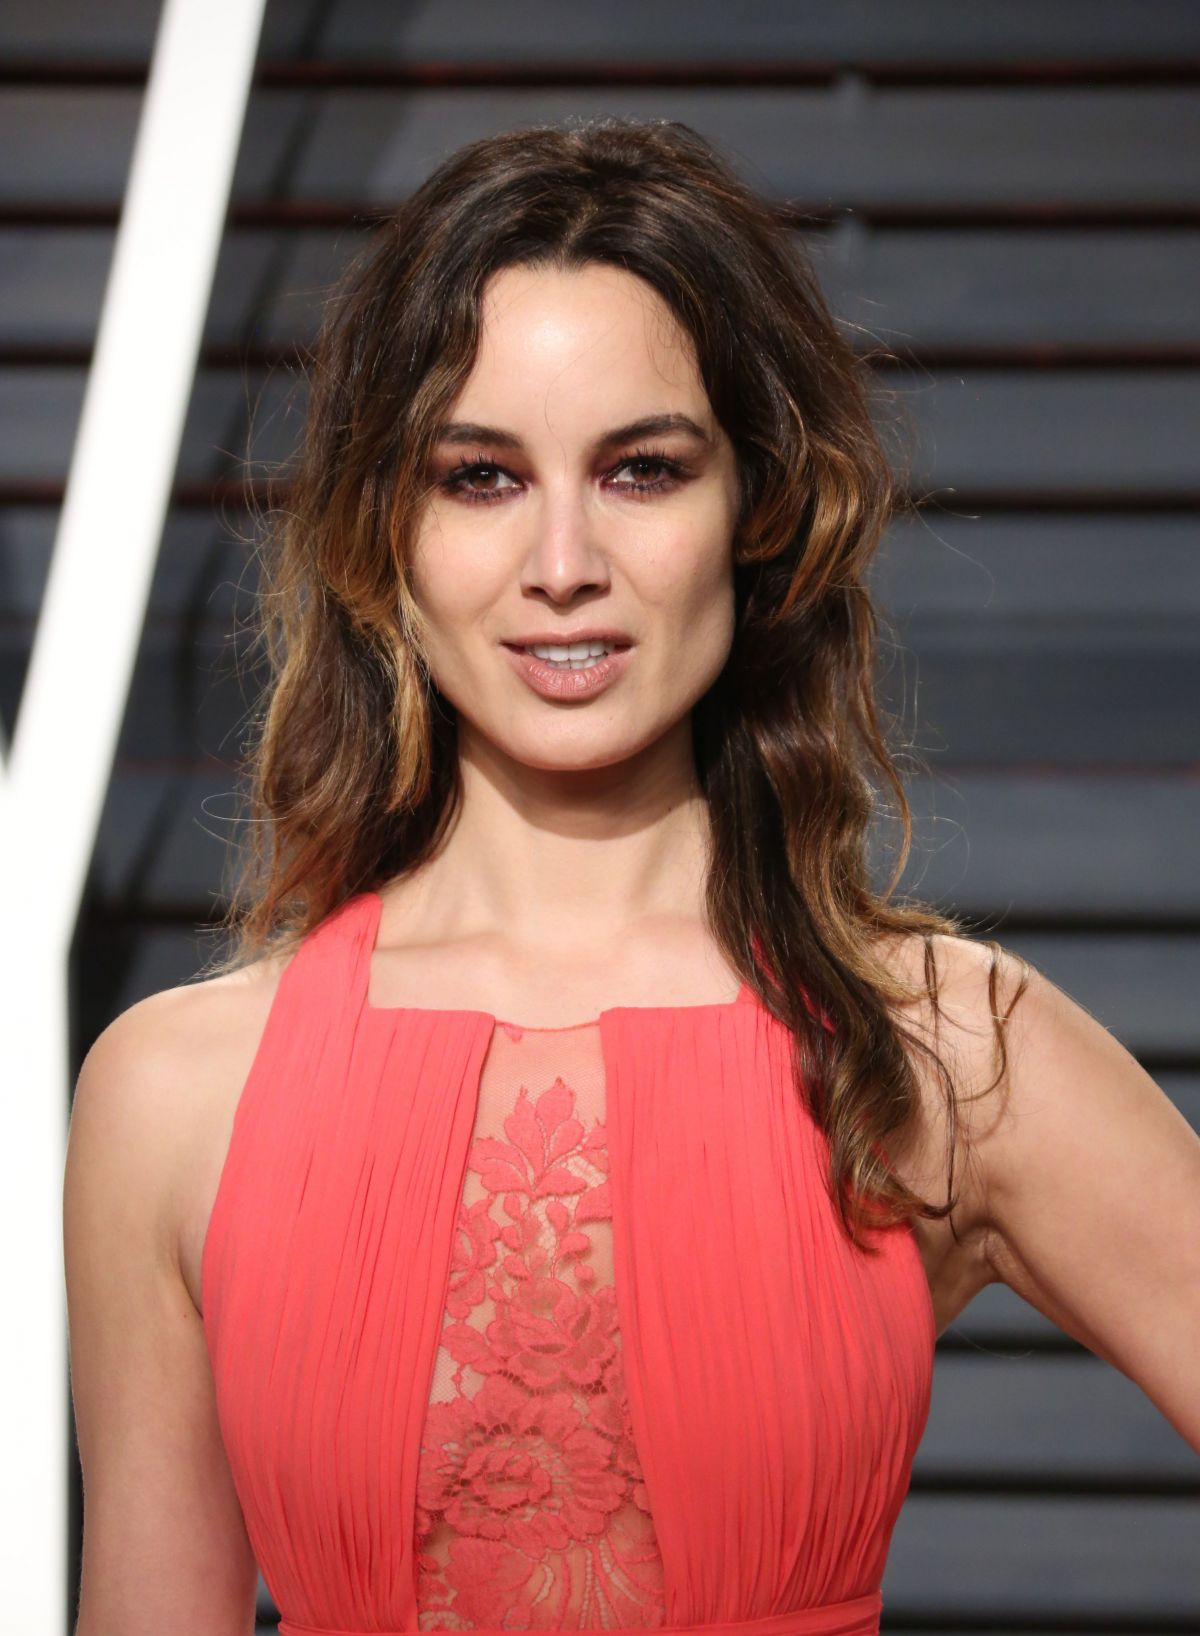 BERENICE MARLOHE at 2017 Vanity Fair Oscar Party in Beverly Hills 02/26/2017